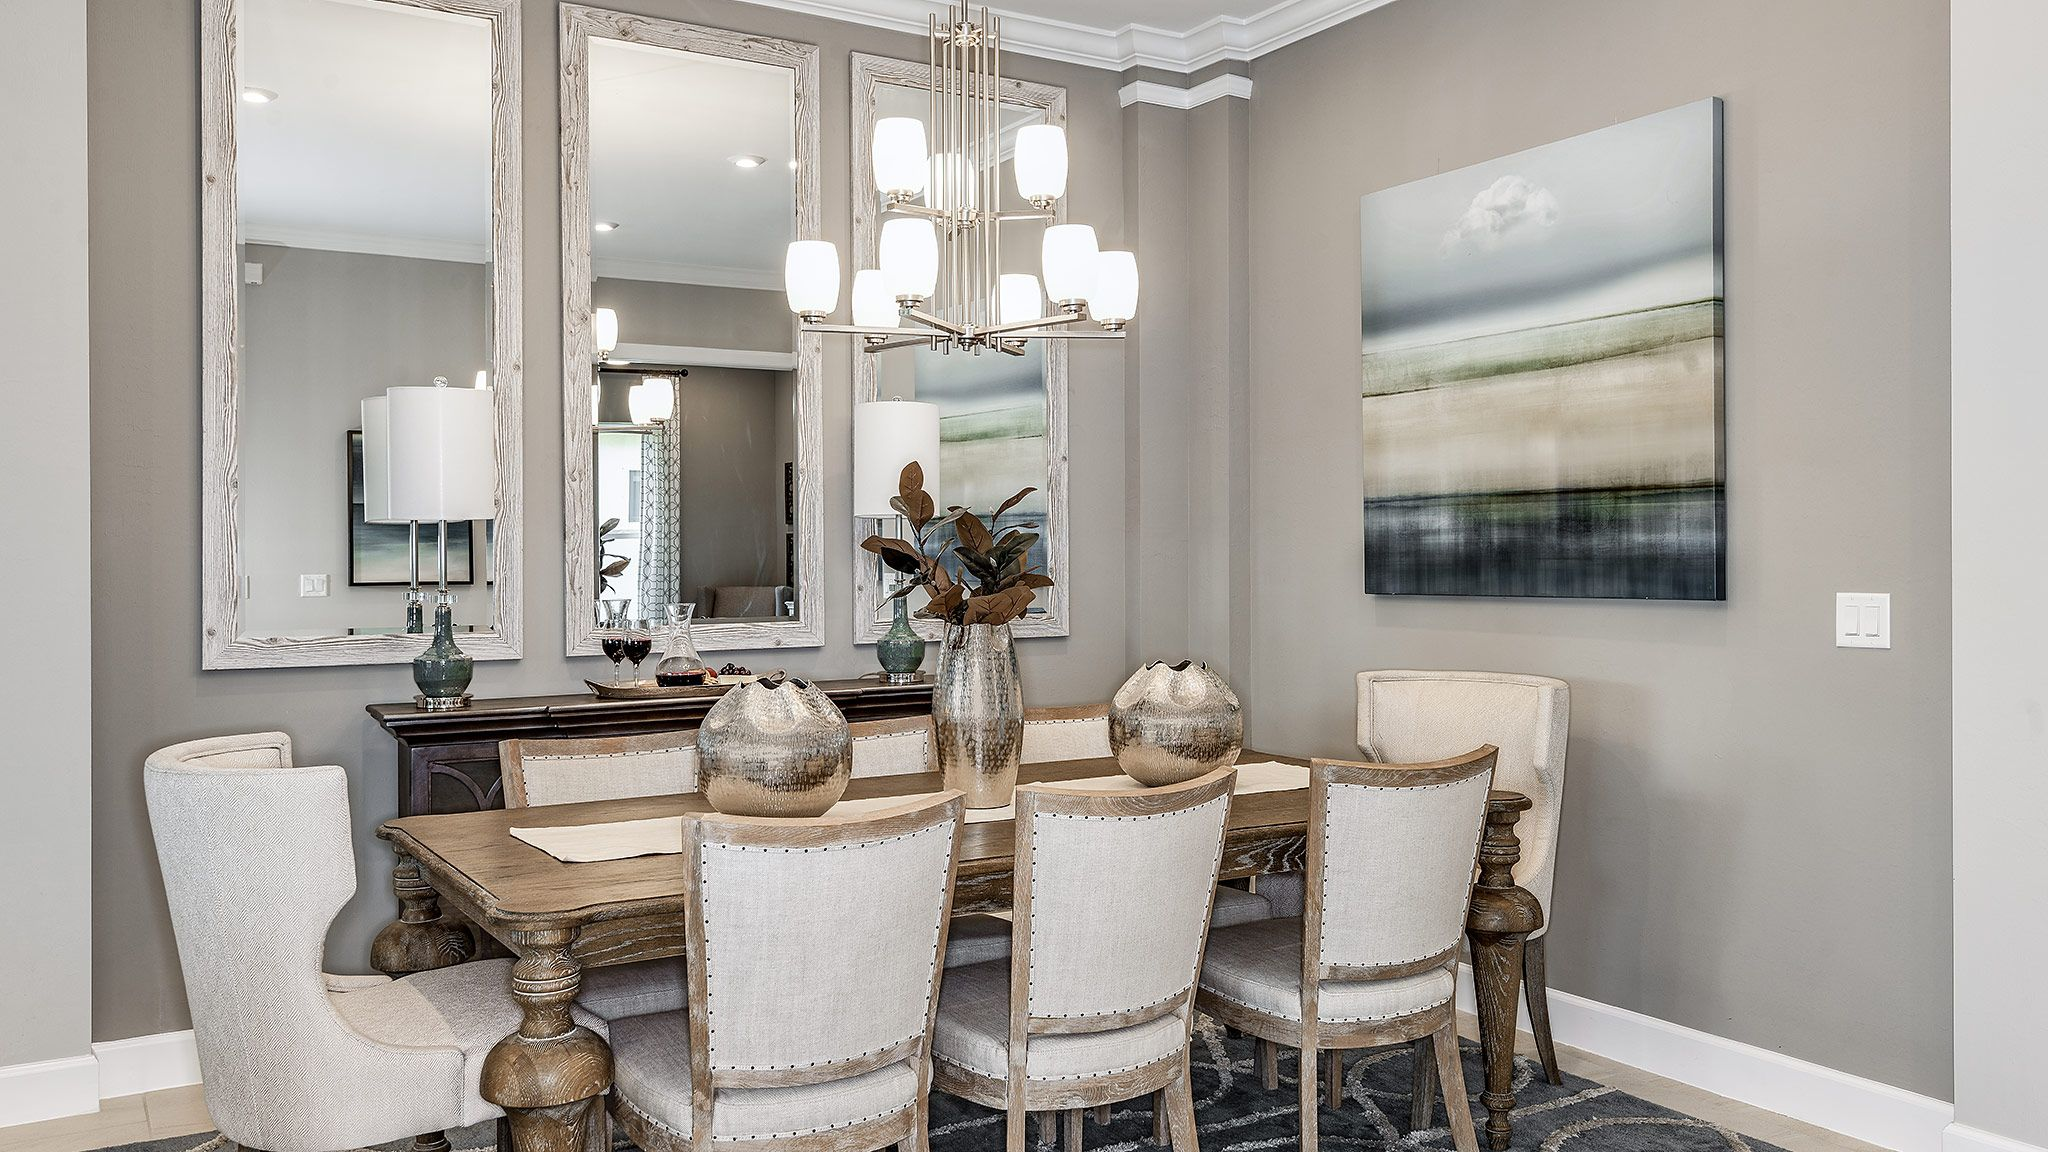 Living Area featured in the Lazio Plan By Taylor Morrison in Naples, FL